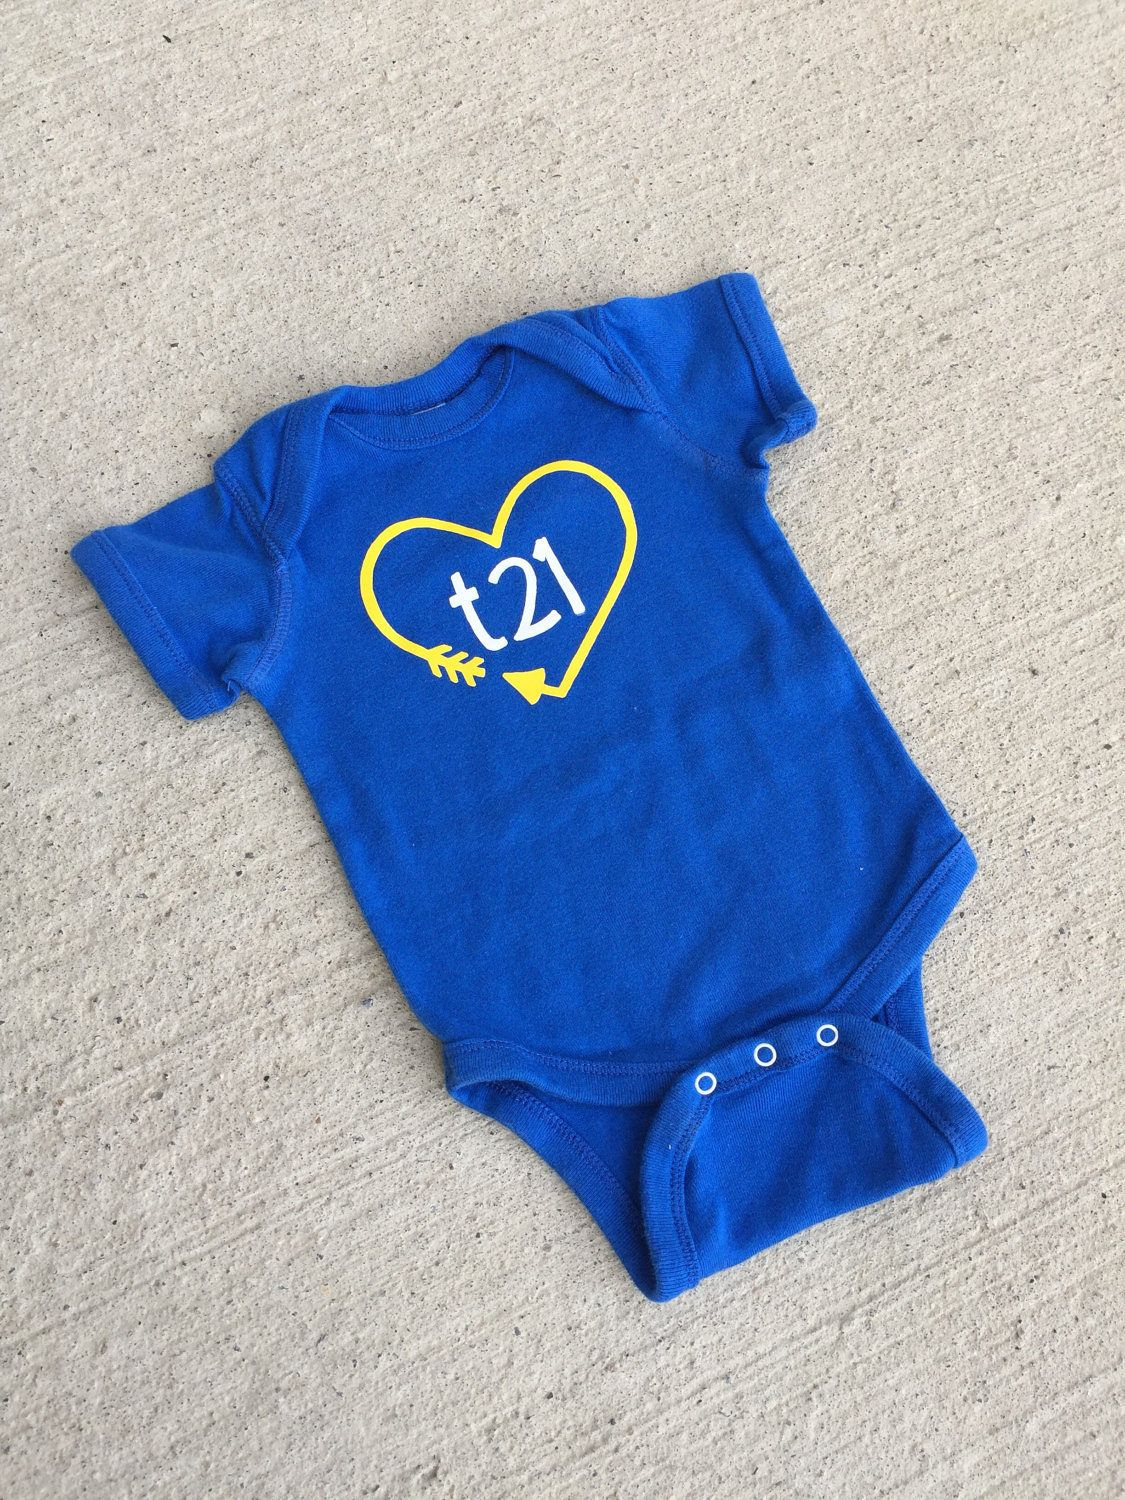 9d401e0d3 Down Syndrome Awareness Onesies ~ Baby Girls or Baby Boys, Royal Blue Short-Sleeved  Onesie with Yellow and White